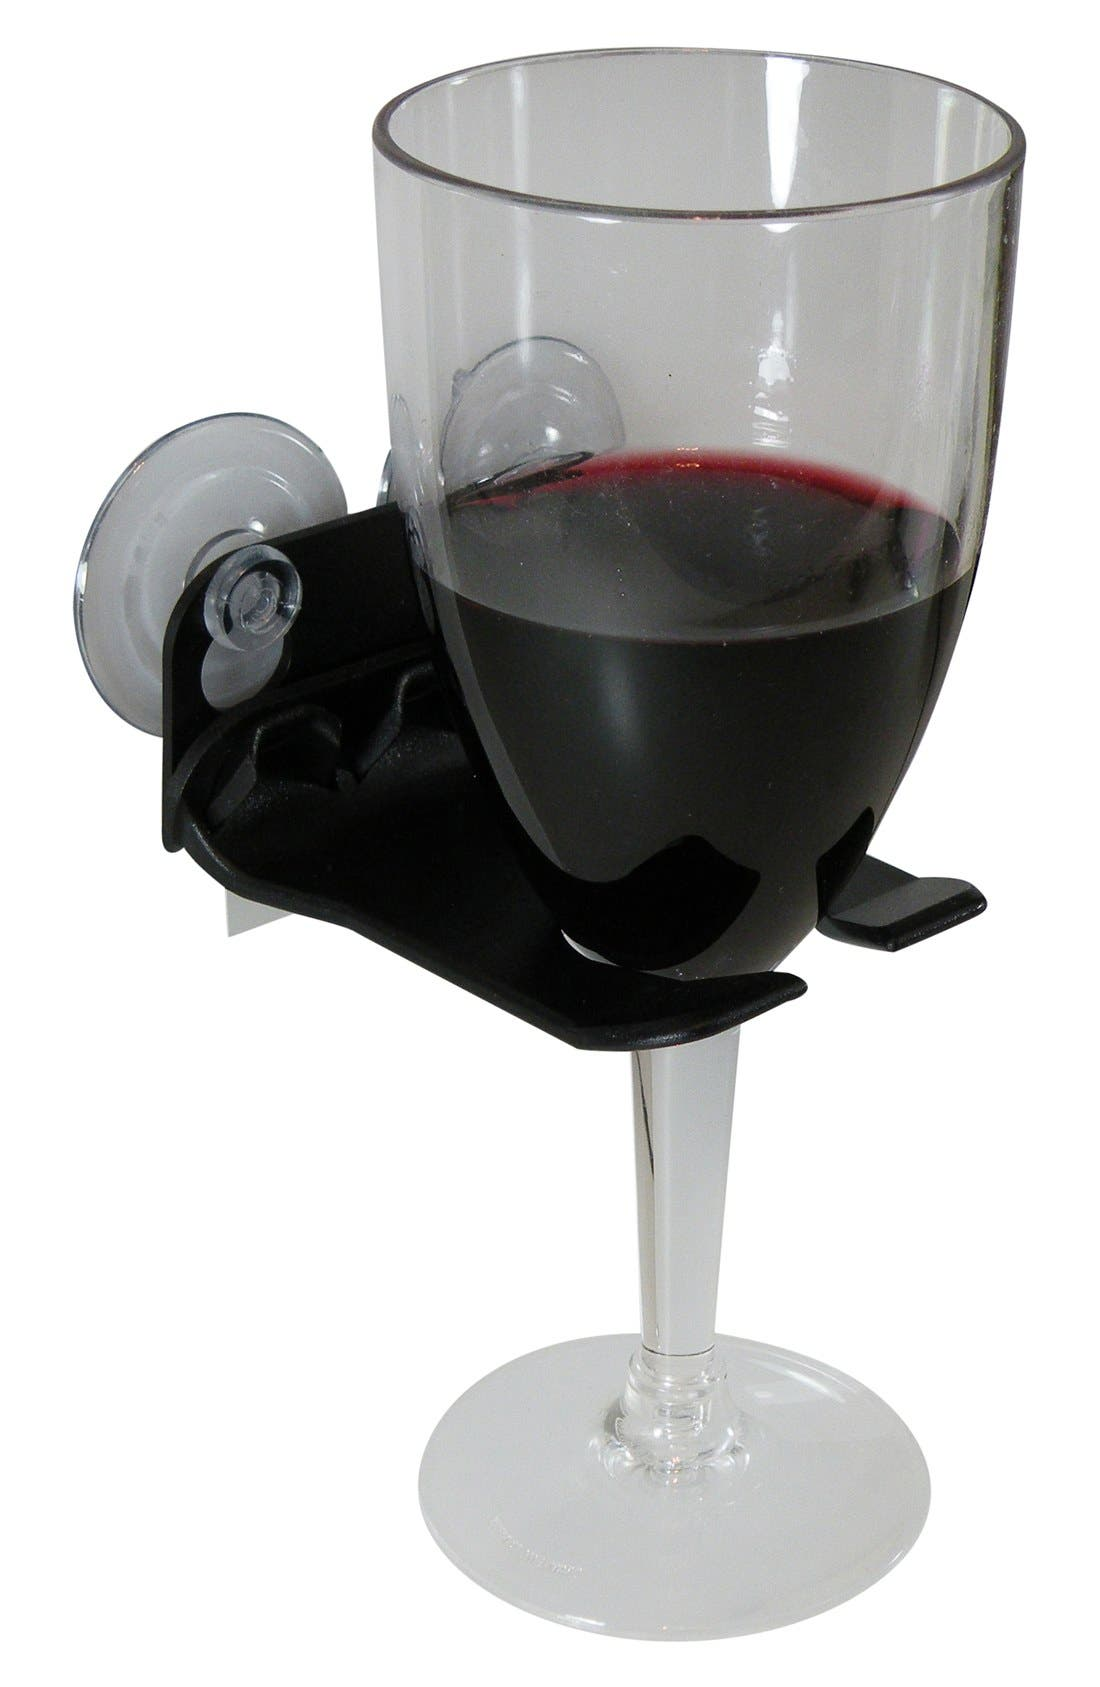 Bathtub Wine Glass Holder, Main, color, 001